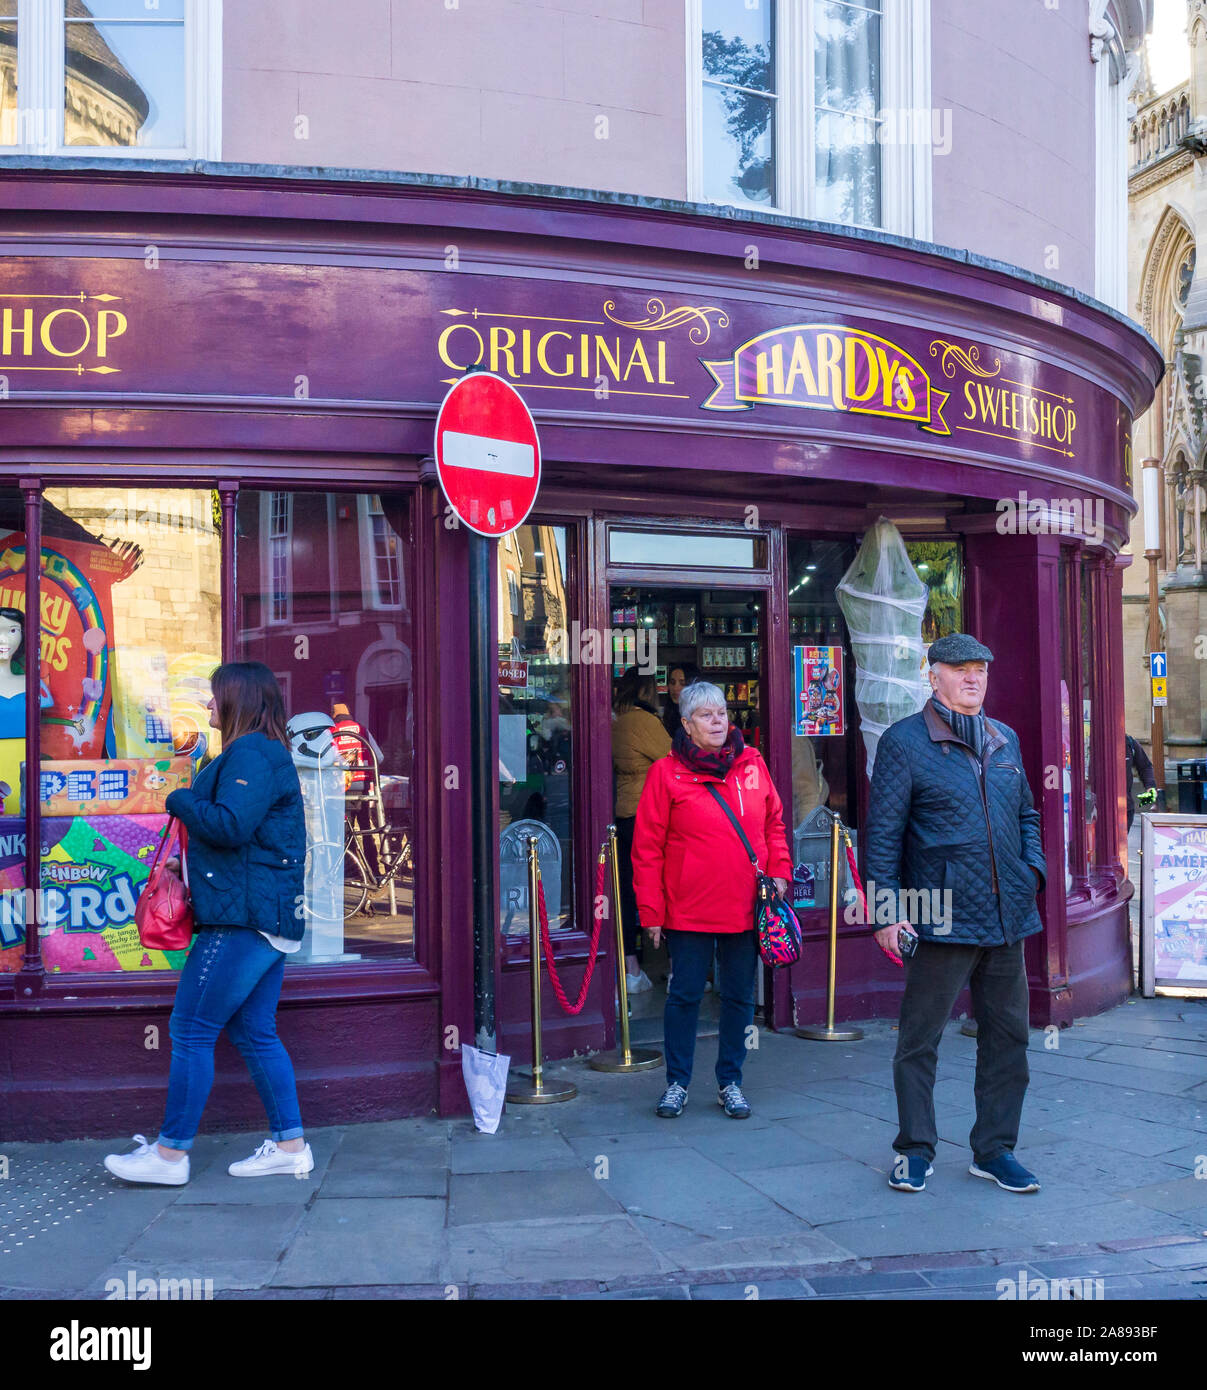 Hardys original sweet shop Bridge Street Cambridge City 2019 Stock Photo